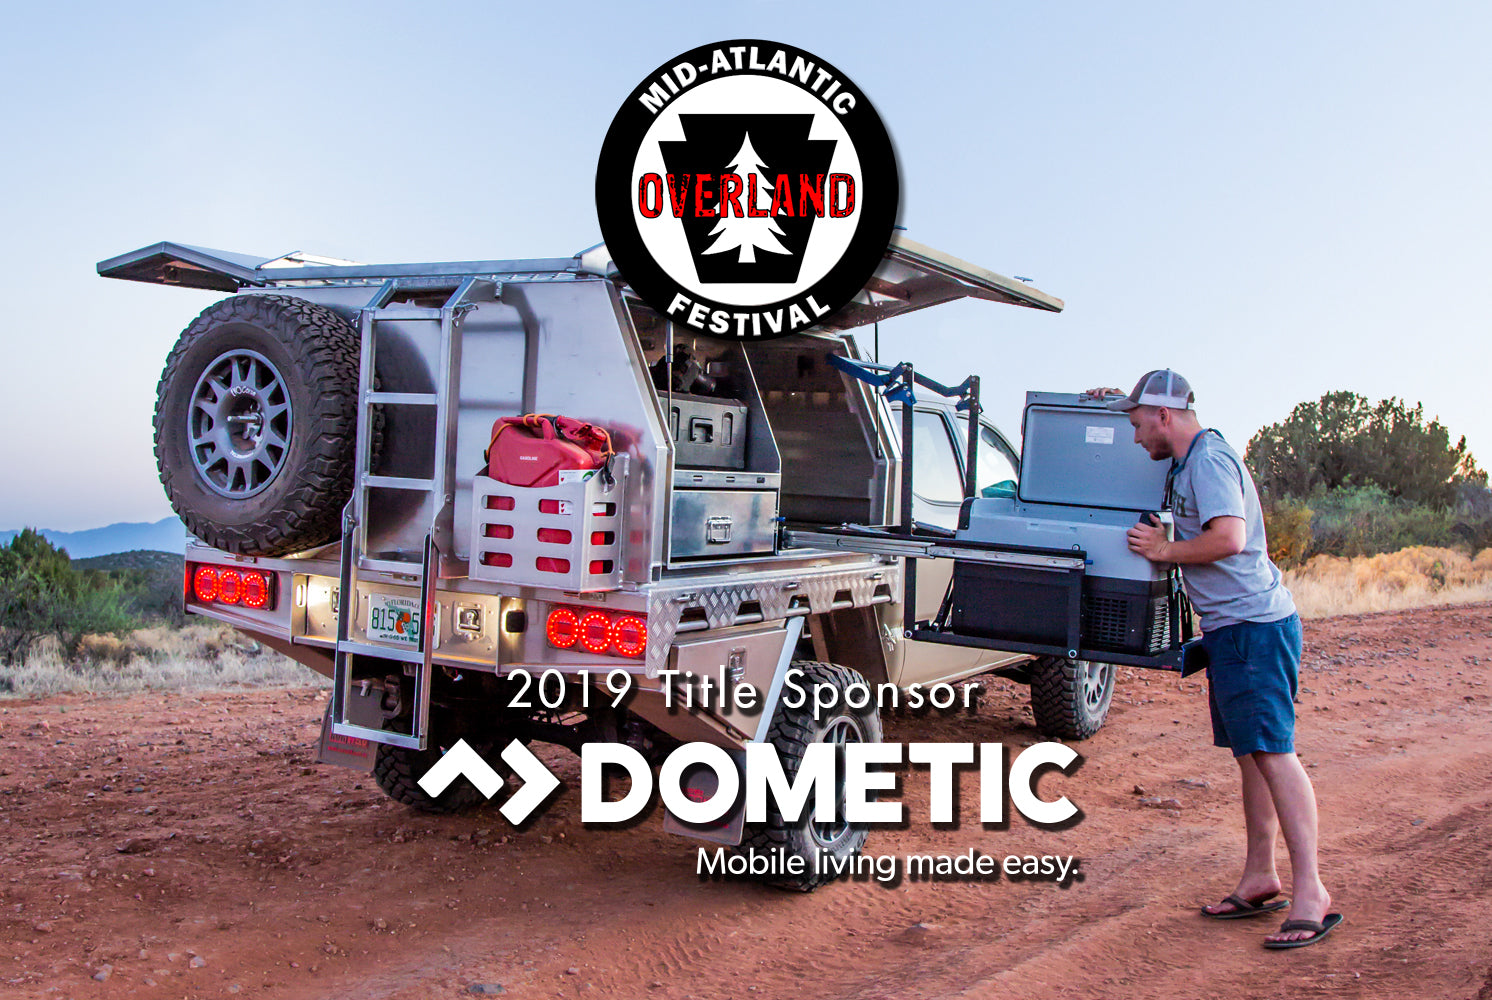 MAOF 2019 Title Sponsor: Dometic